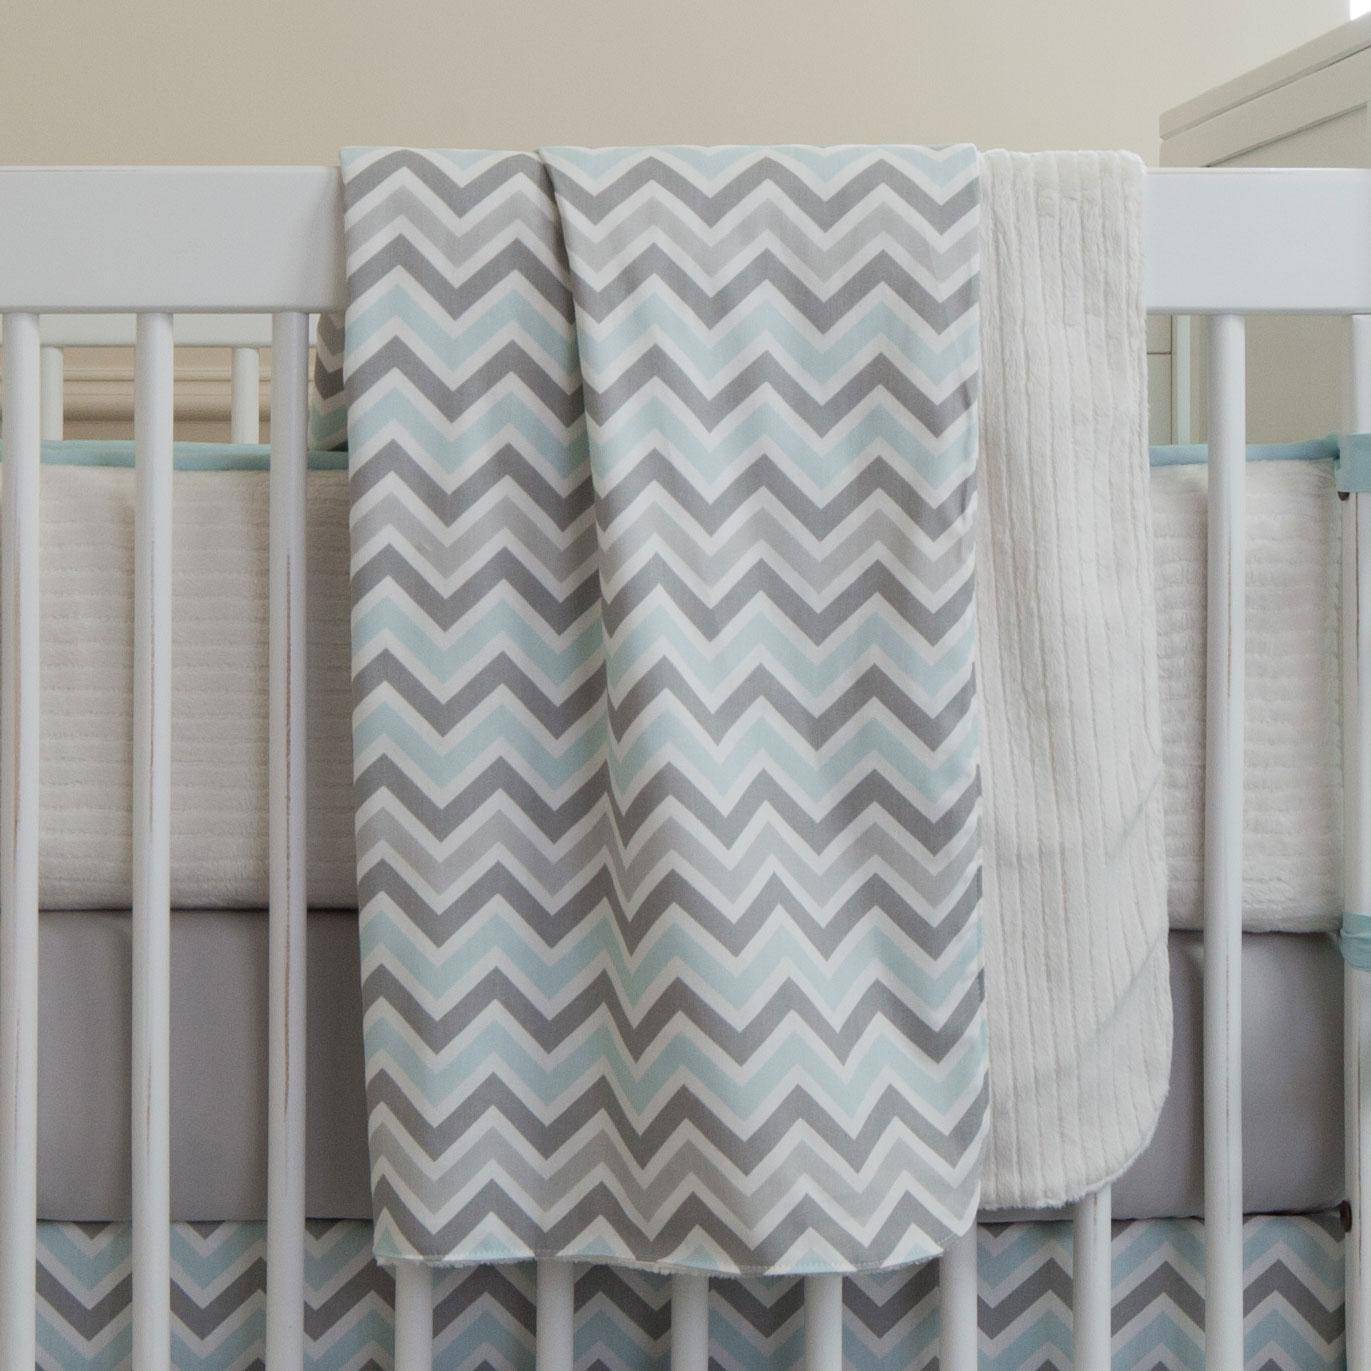 Chevron Baby Blanket Best Of Mist and Gray Chevron Crib Blanket Of Attractive 49 Pics Chevron Baby Blanket